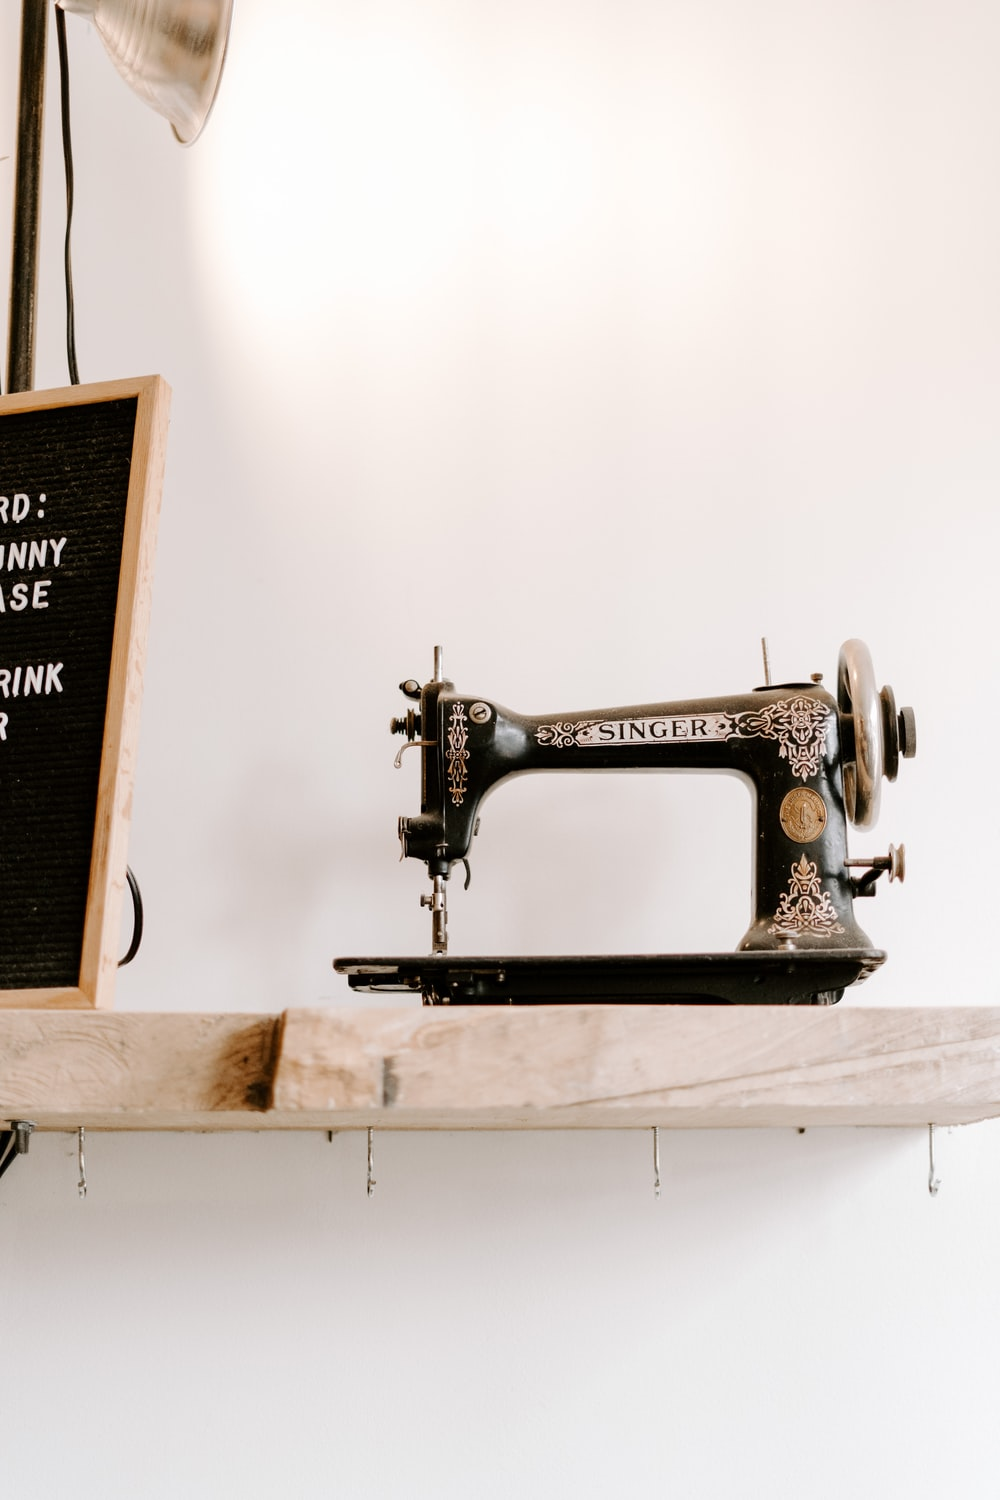 black and brown Singer sewing machine near wall